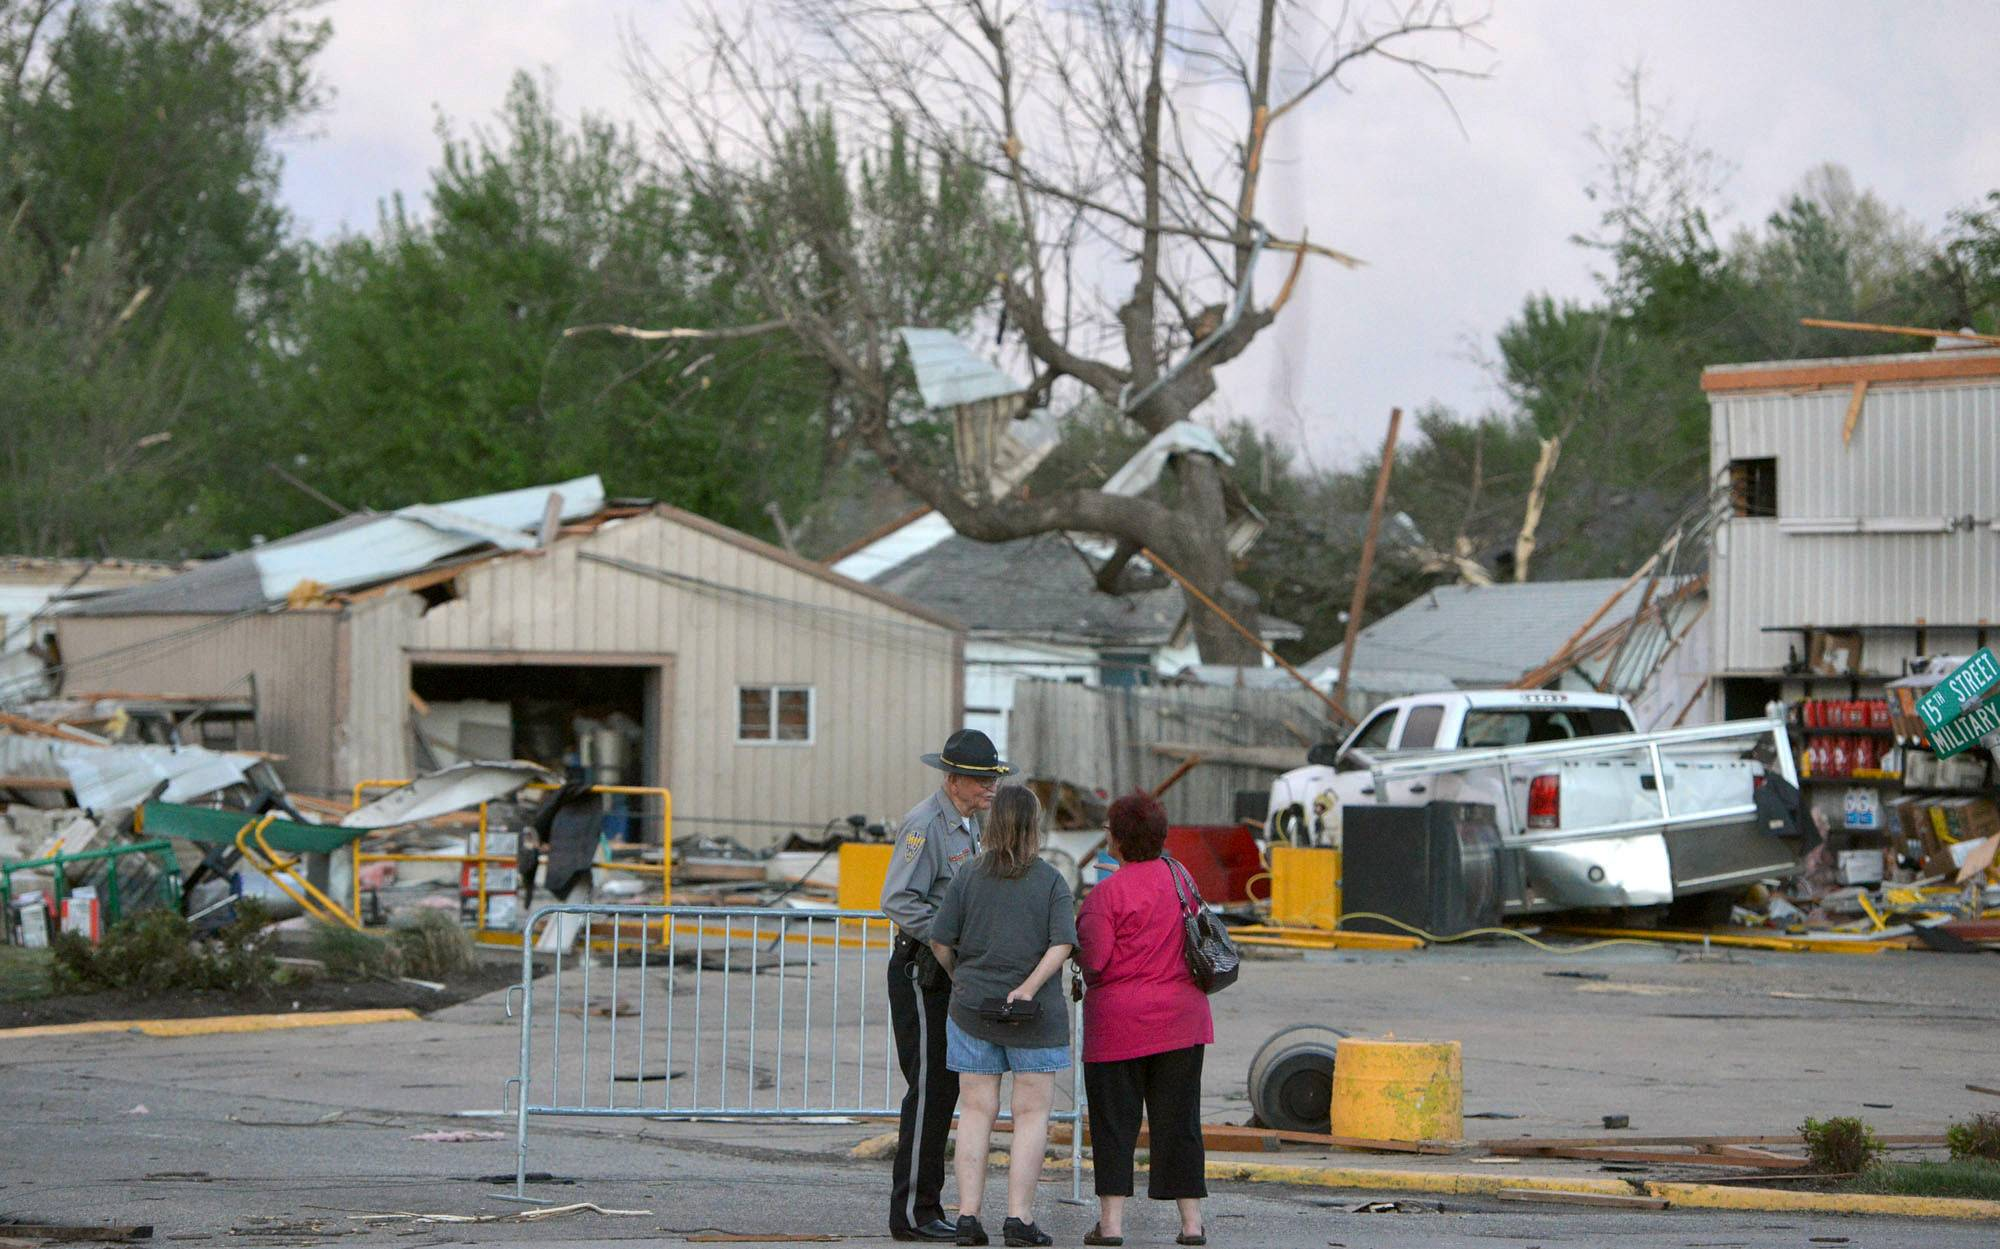 A officer talks to people at 15th and Military following Sunday's tornado in Baxter Springs, Kan., Sunday April 27, 2014. A powerful storm system rumbled through the central and southern United States on Sunday, spawning a massive tornado that carved through Little Rock's northern suburbs and another that hit Oklahoma and Kansas.